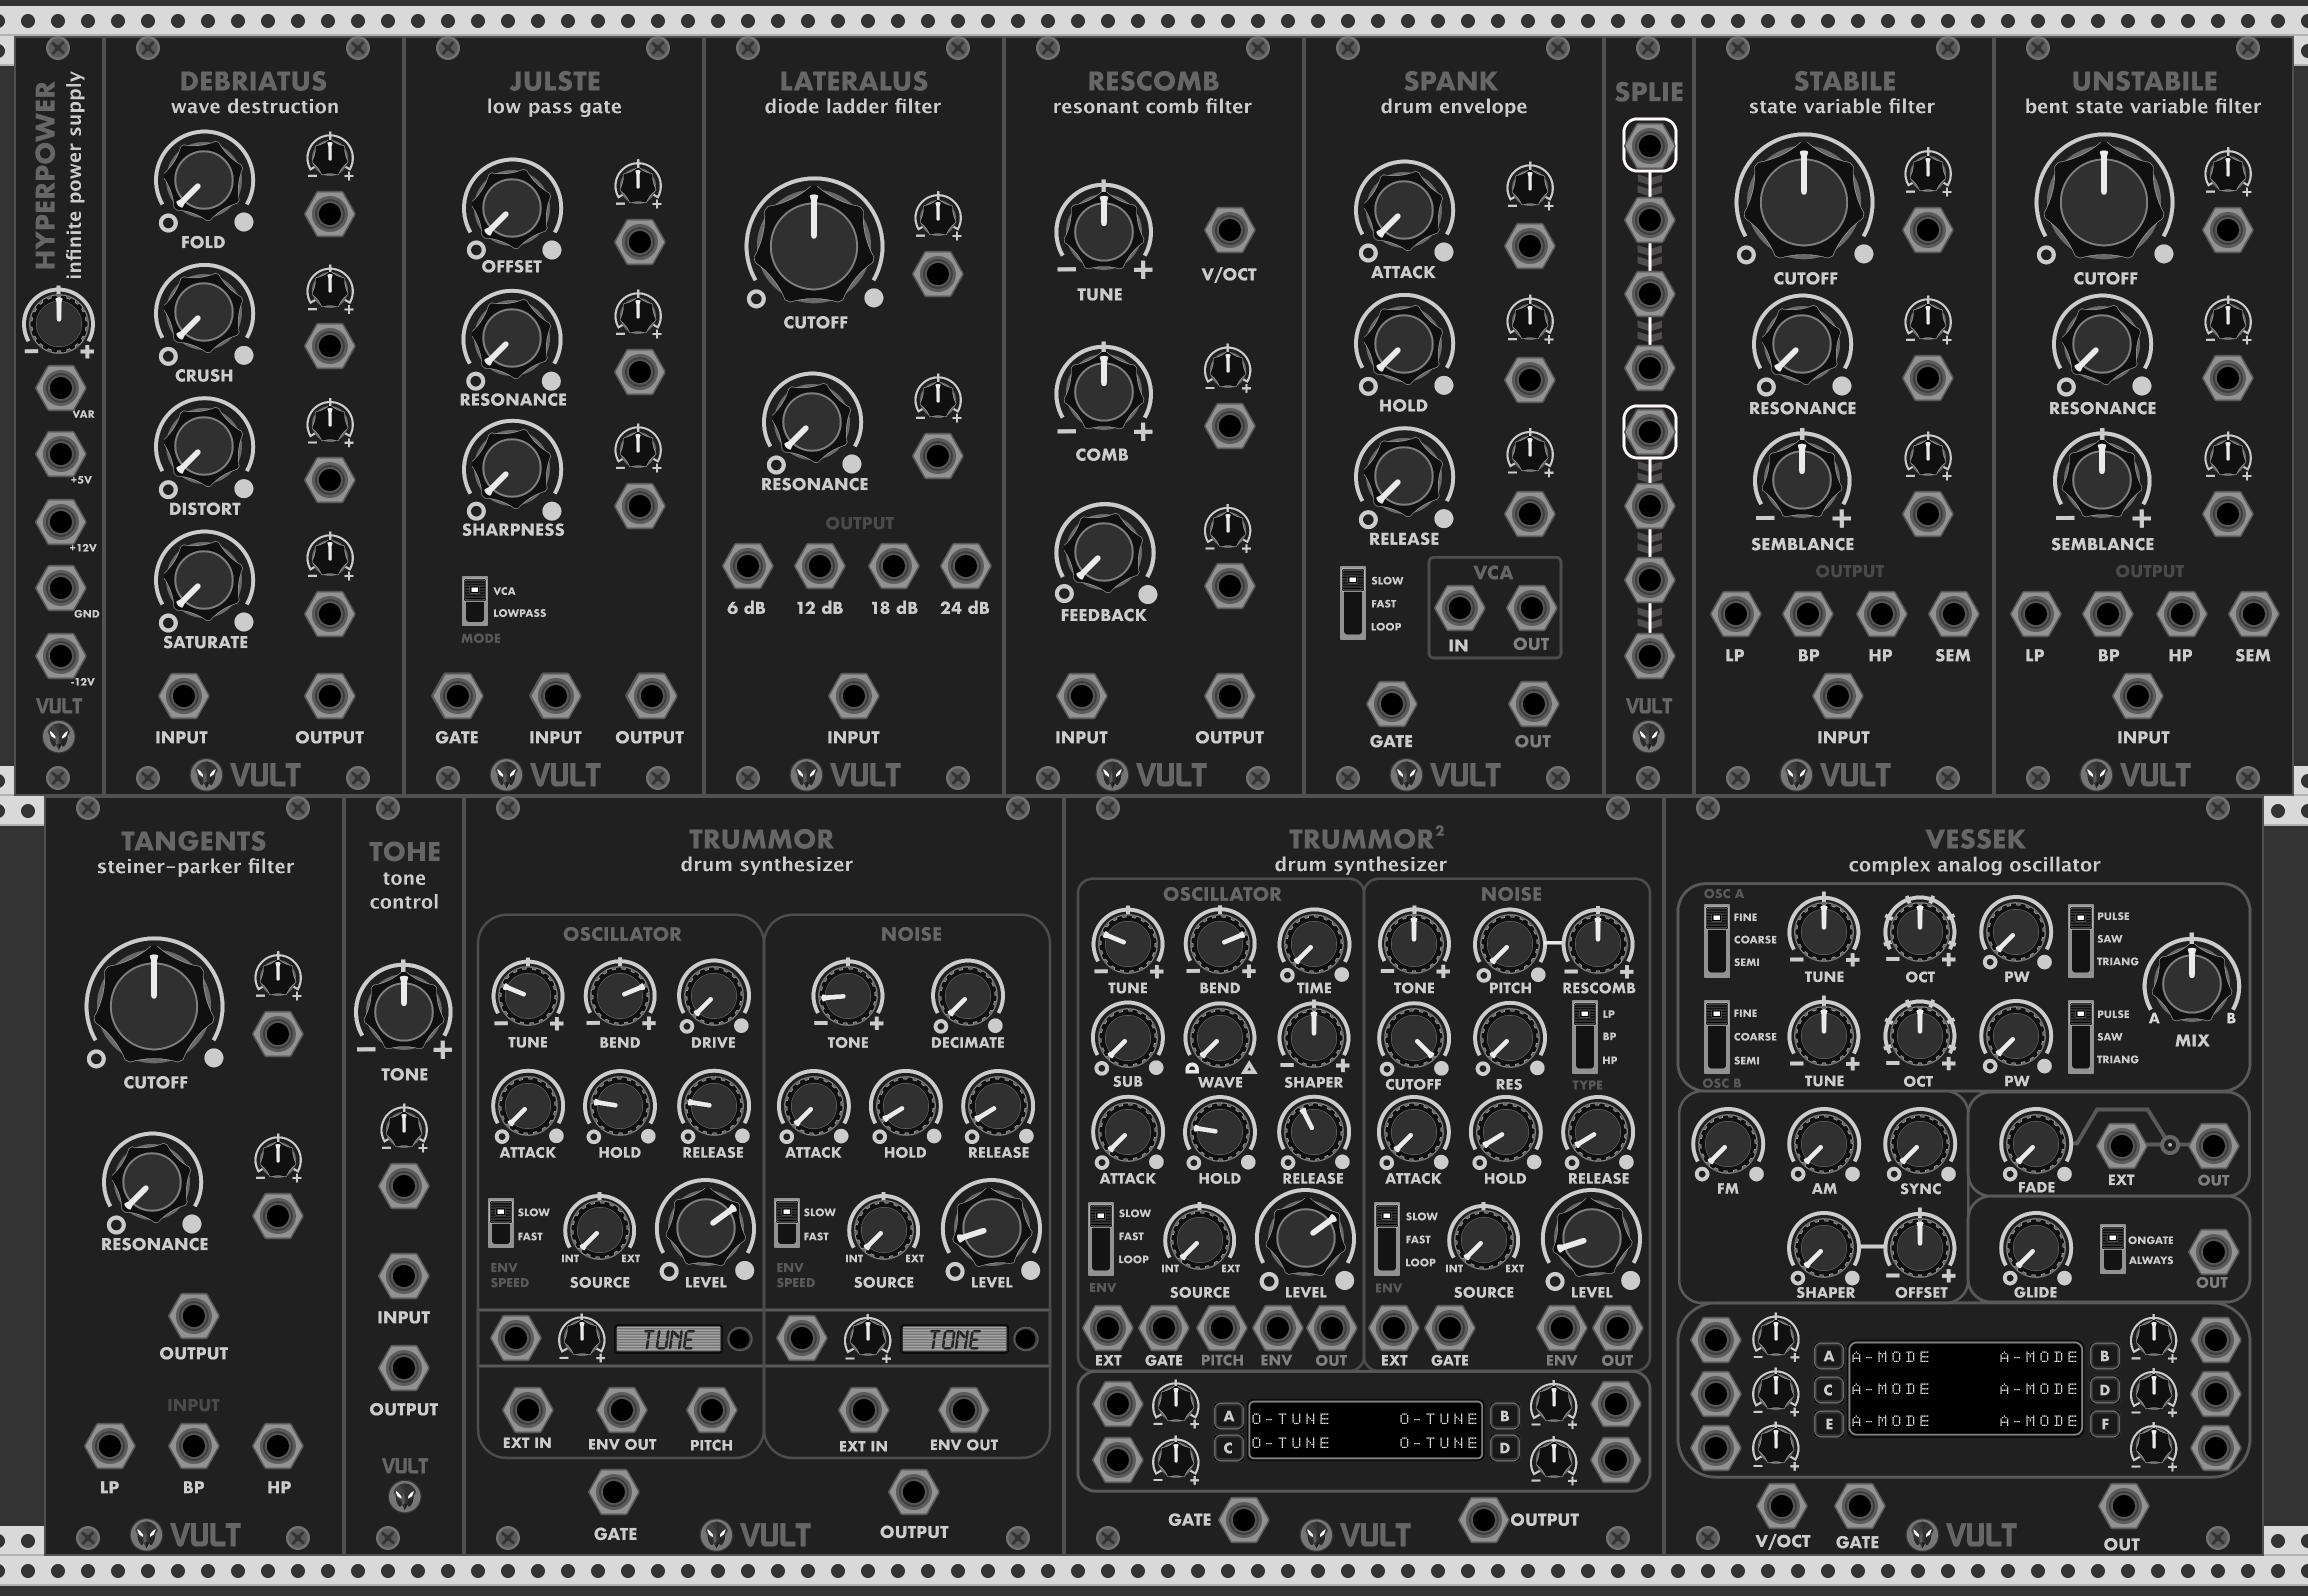 VCV Console mixer released + Hot Bunny, Vult modules, Stellare